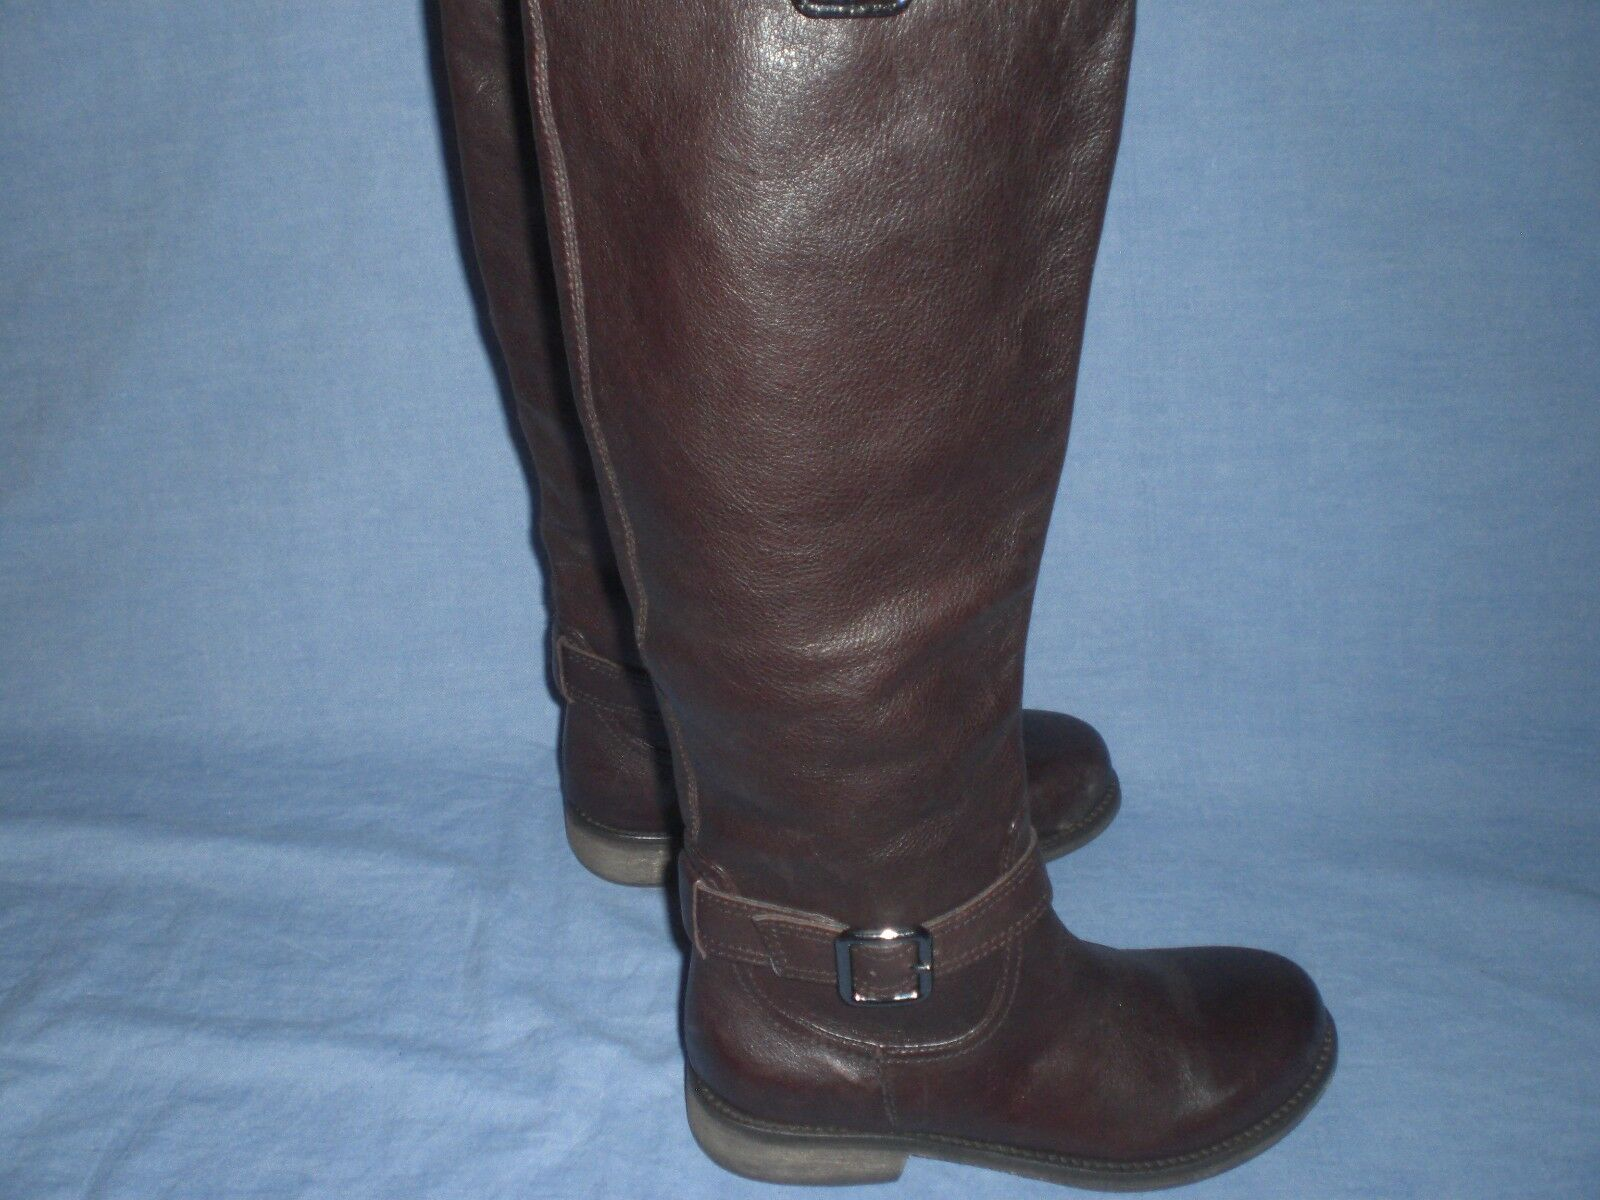 Kenneth Cole Reaction Genuine Leather Brown  Riding Boots  6.5 M